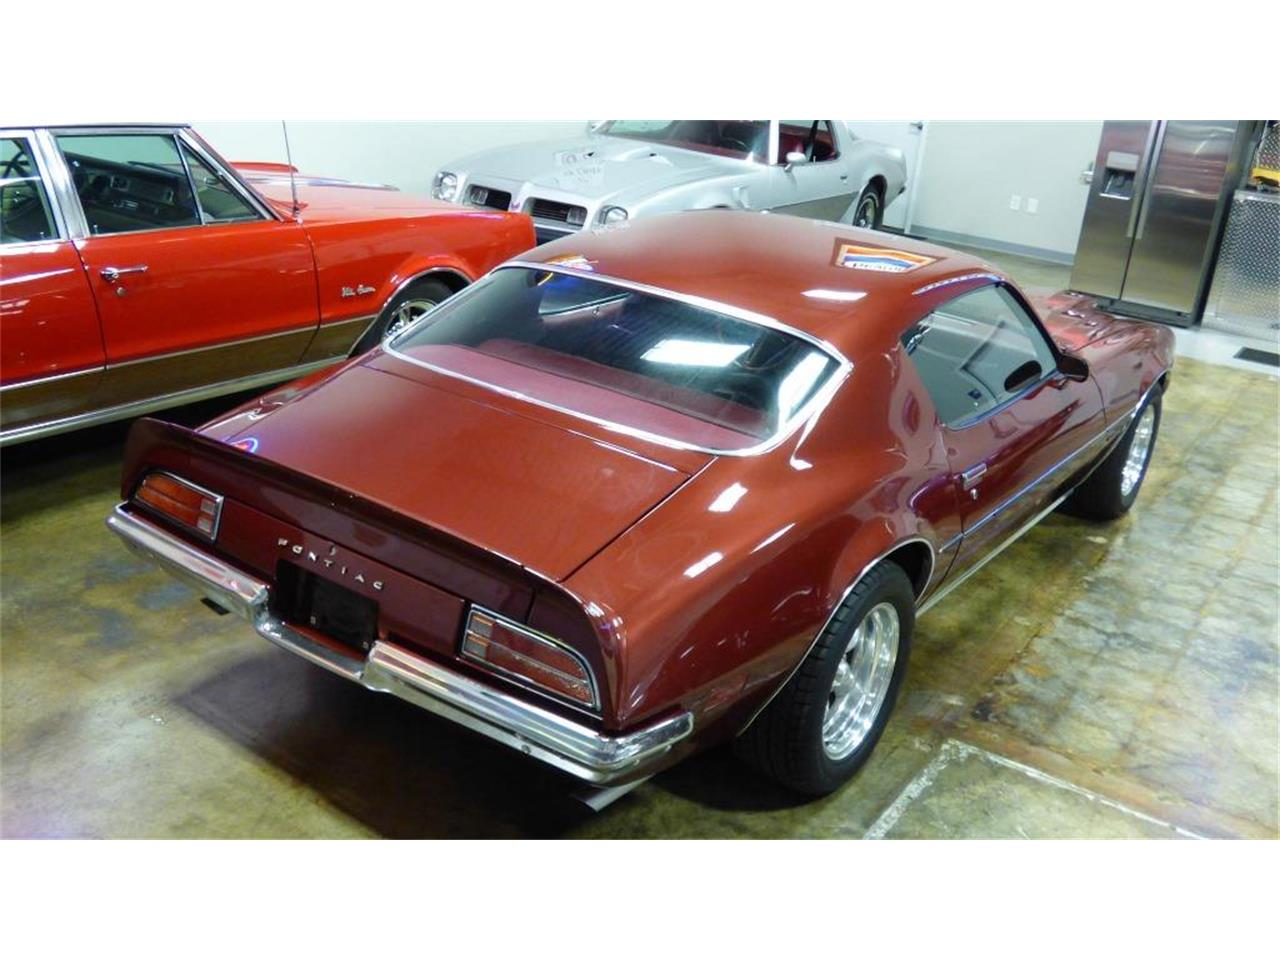 Large Picture of Classic '73 Pontiac Firebird Formula located in Georgia Offered by Cruisers Specialty Autos - PZRG